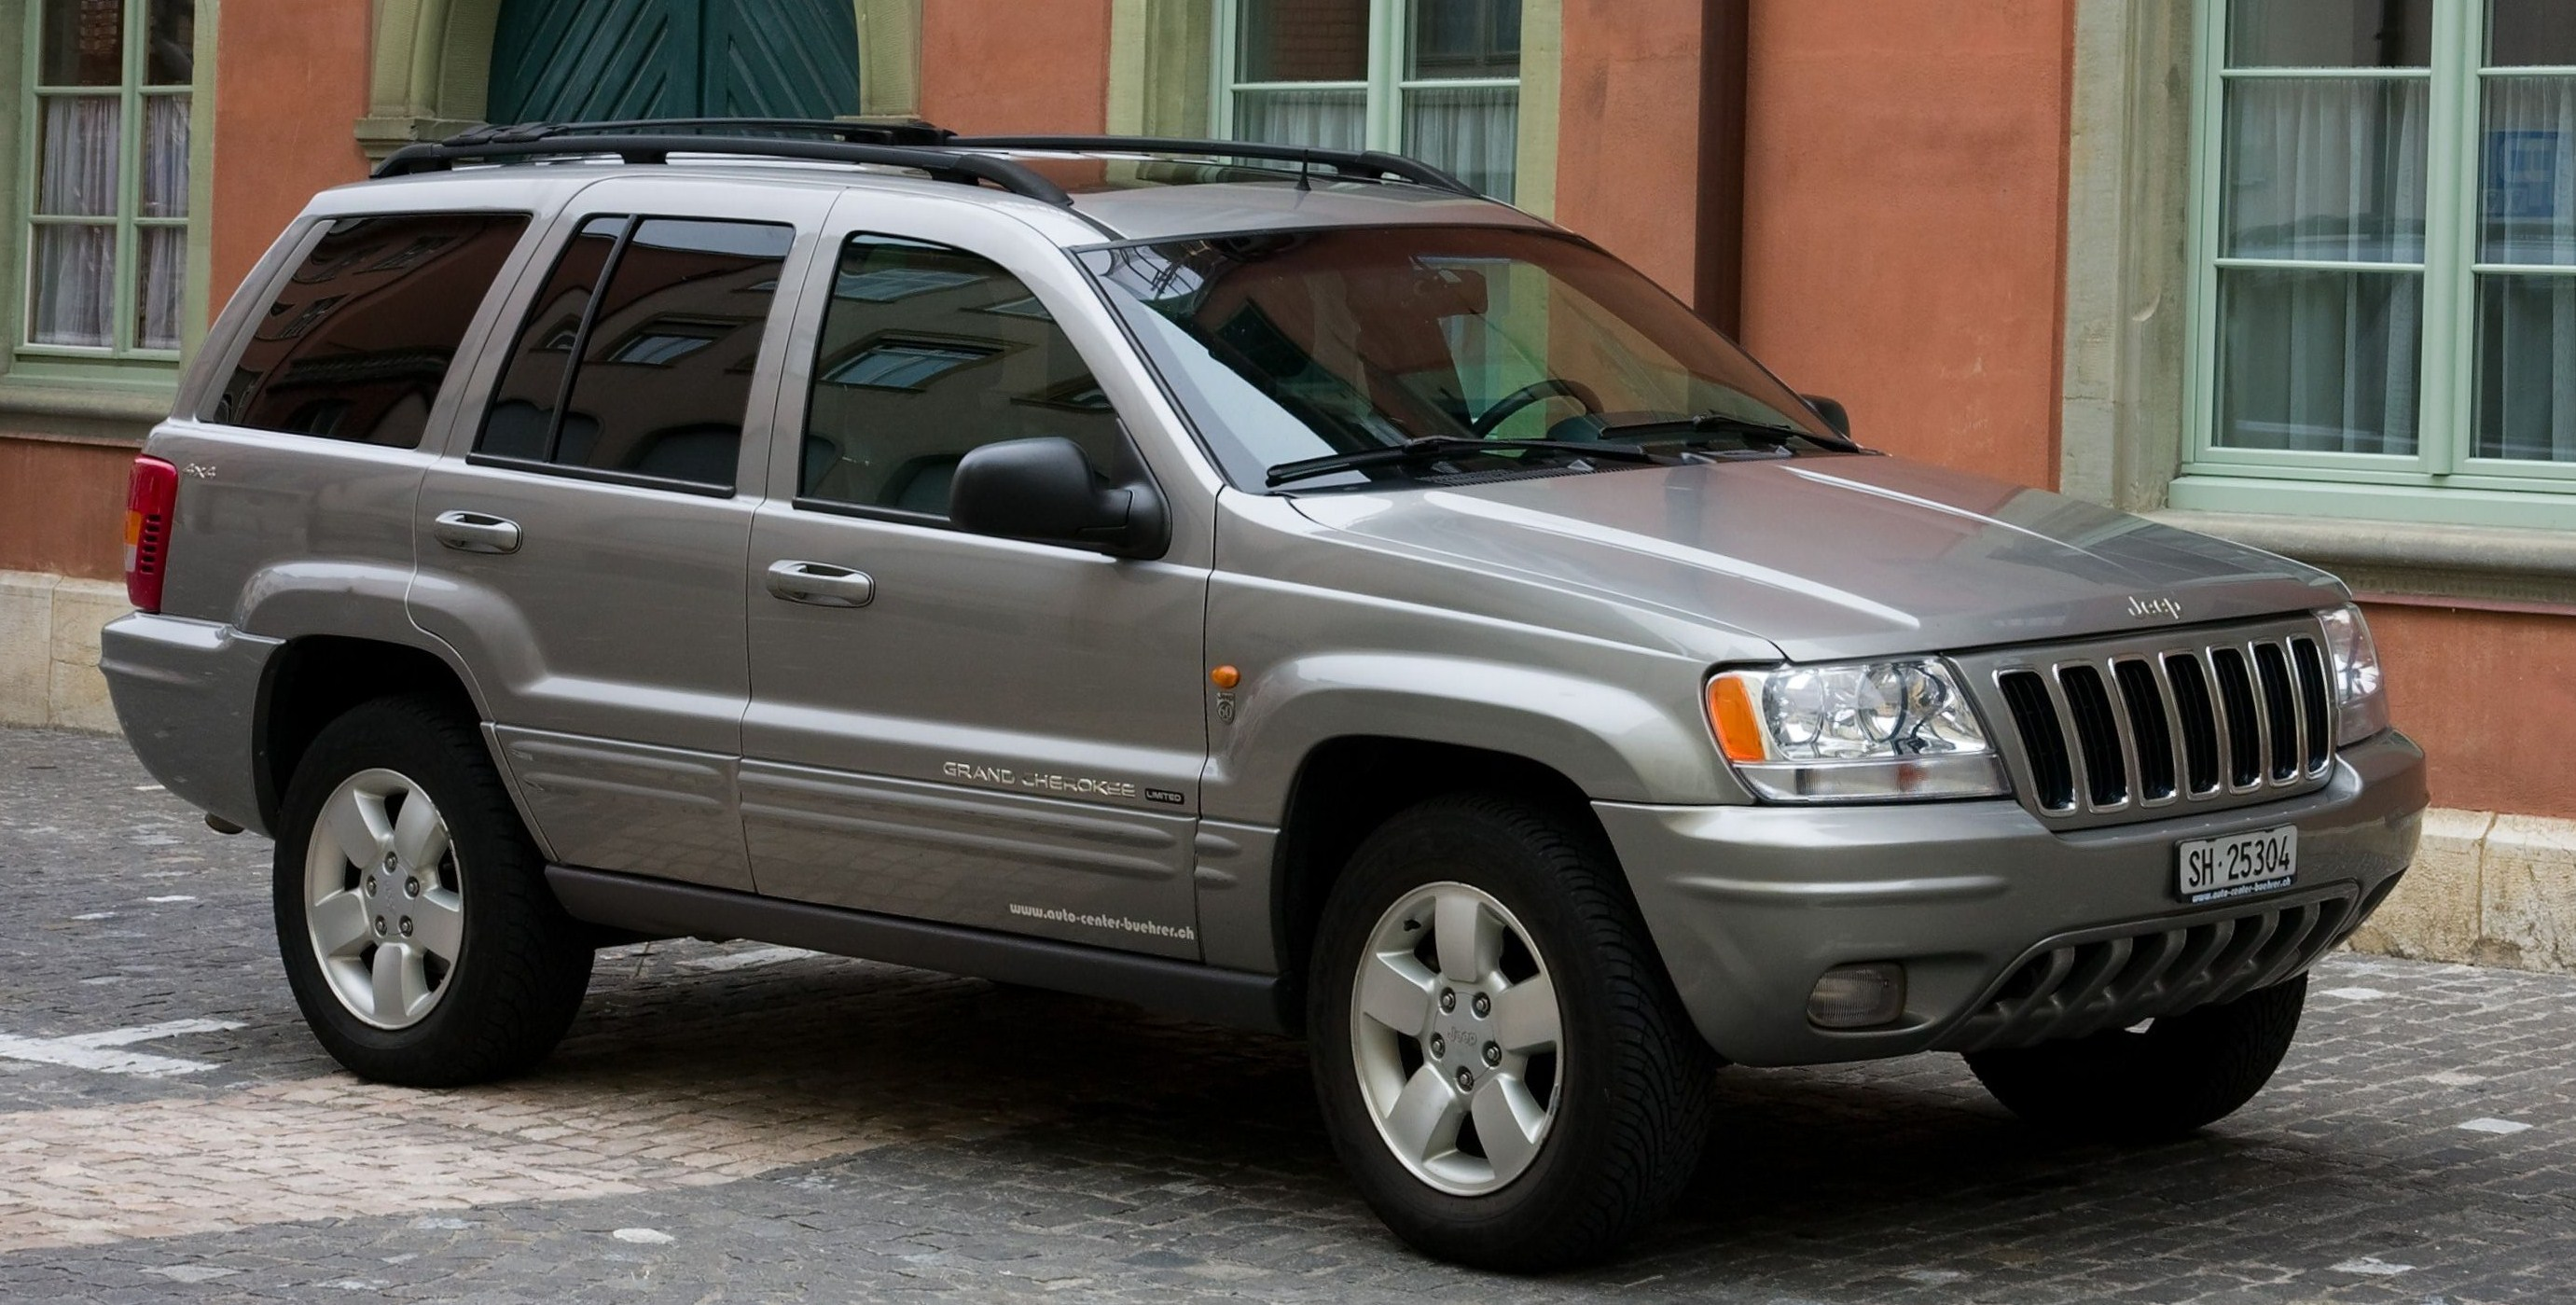 file:jeep cherokee wj - wikimedia commons